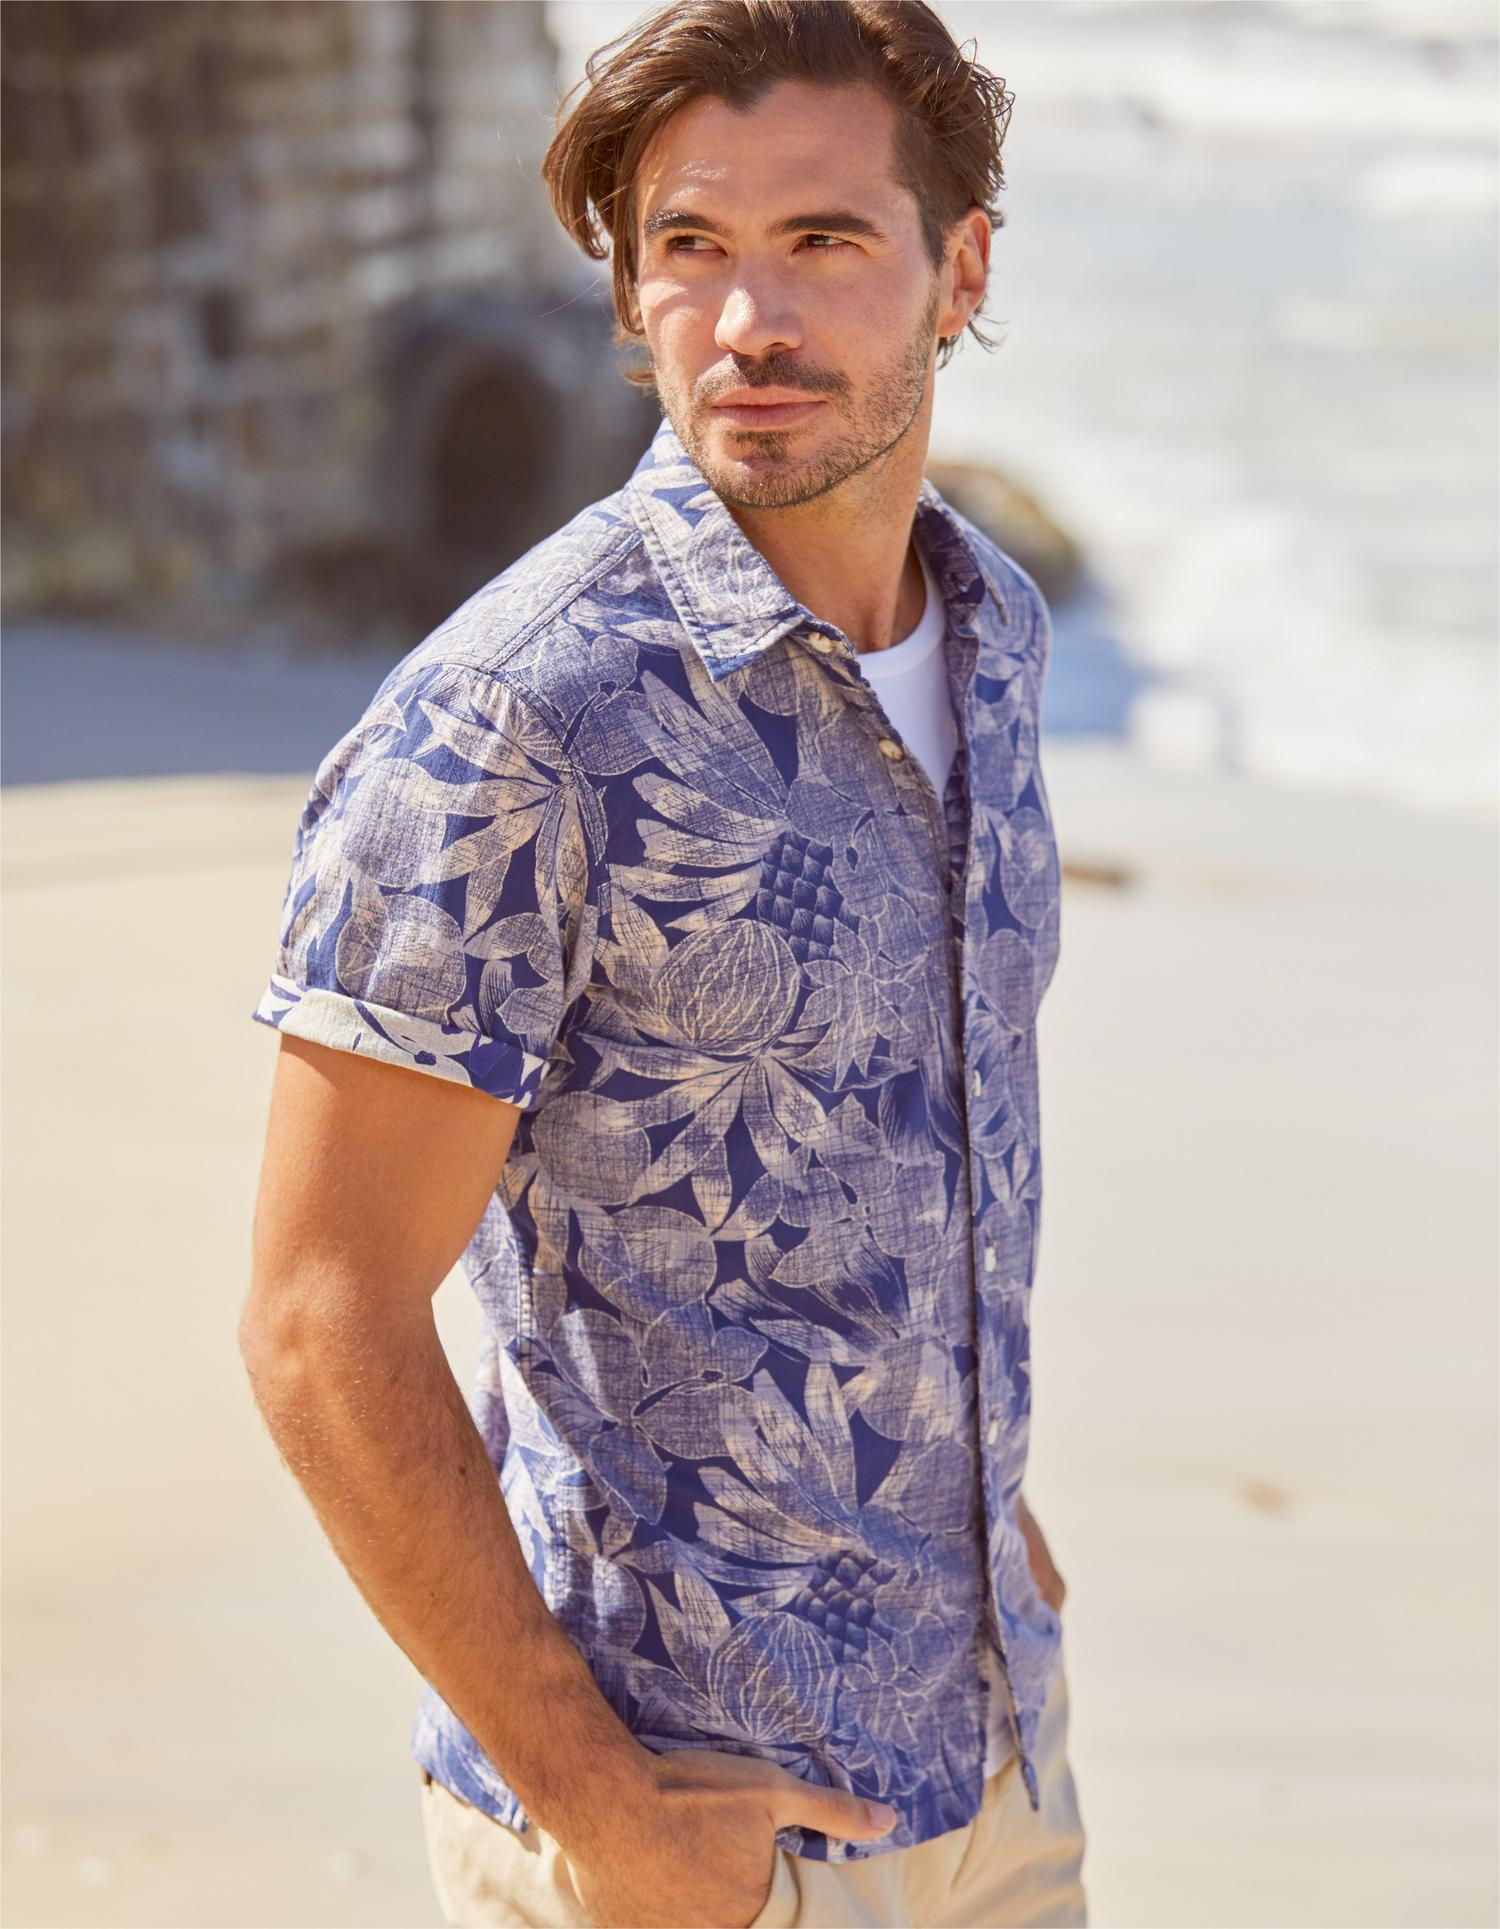 Image of male fatface model wearing a blue hawian printed shirt